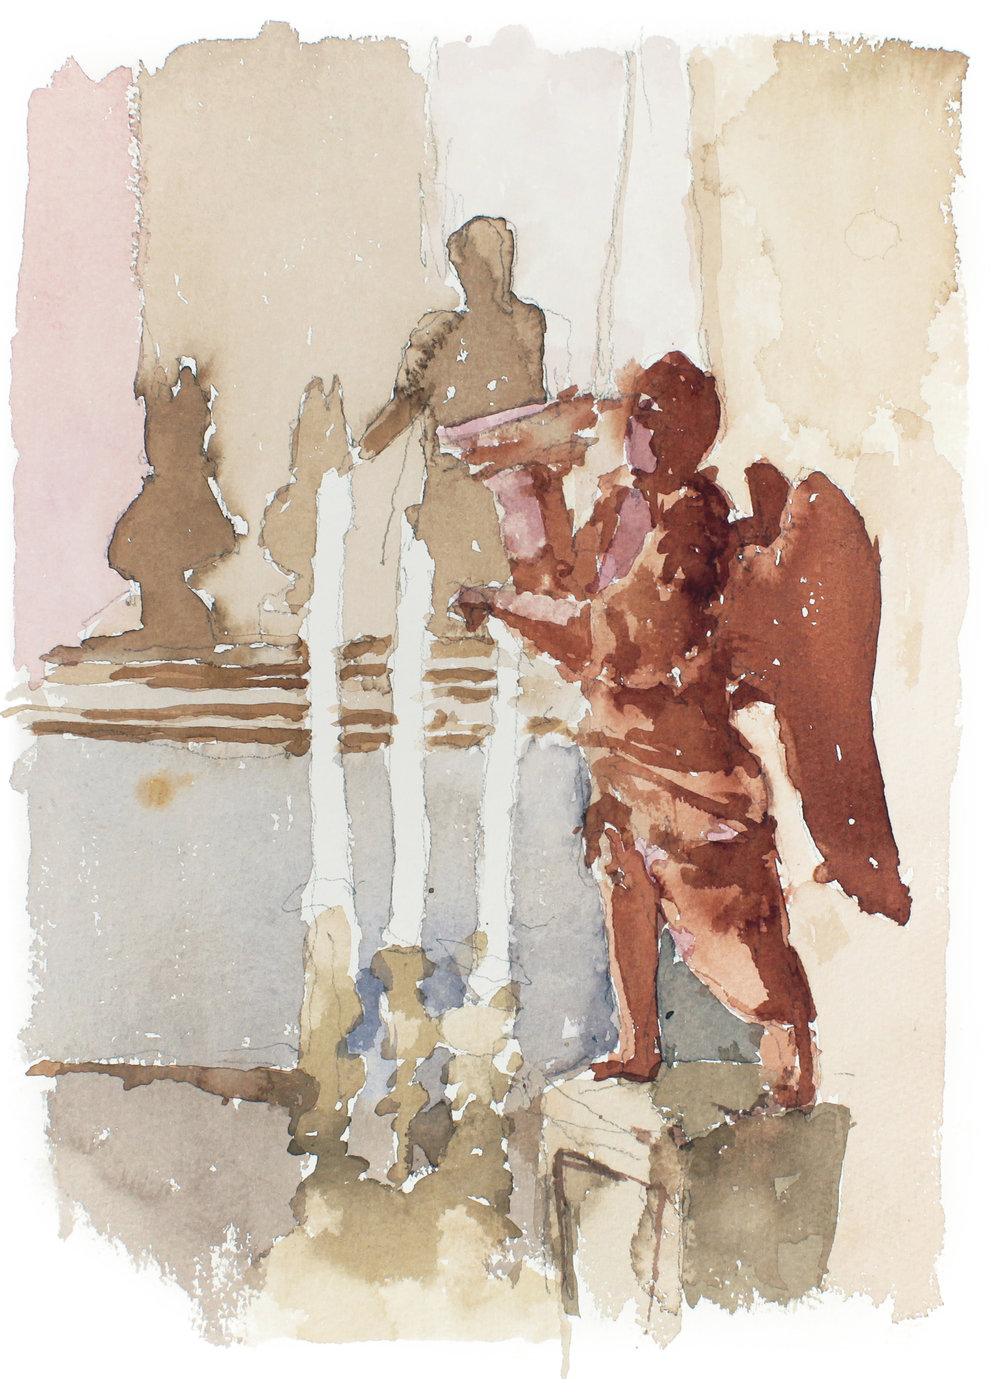 1994_Angel_in_San_Nicolo_Mendicoli_Venice_watercolour_and_pencil_on_paper_14x10in_WPF339.jpg